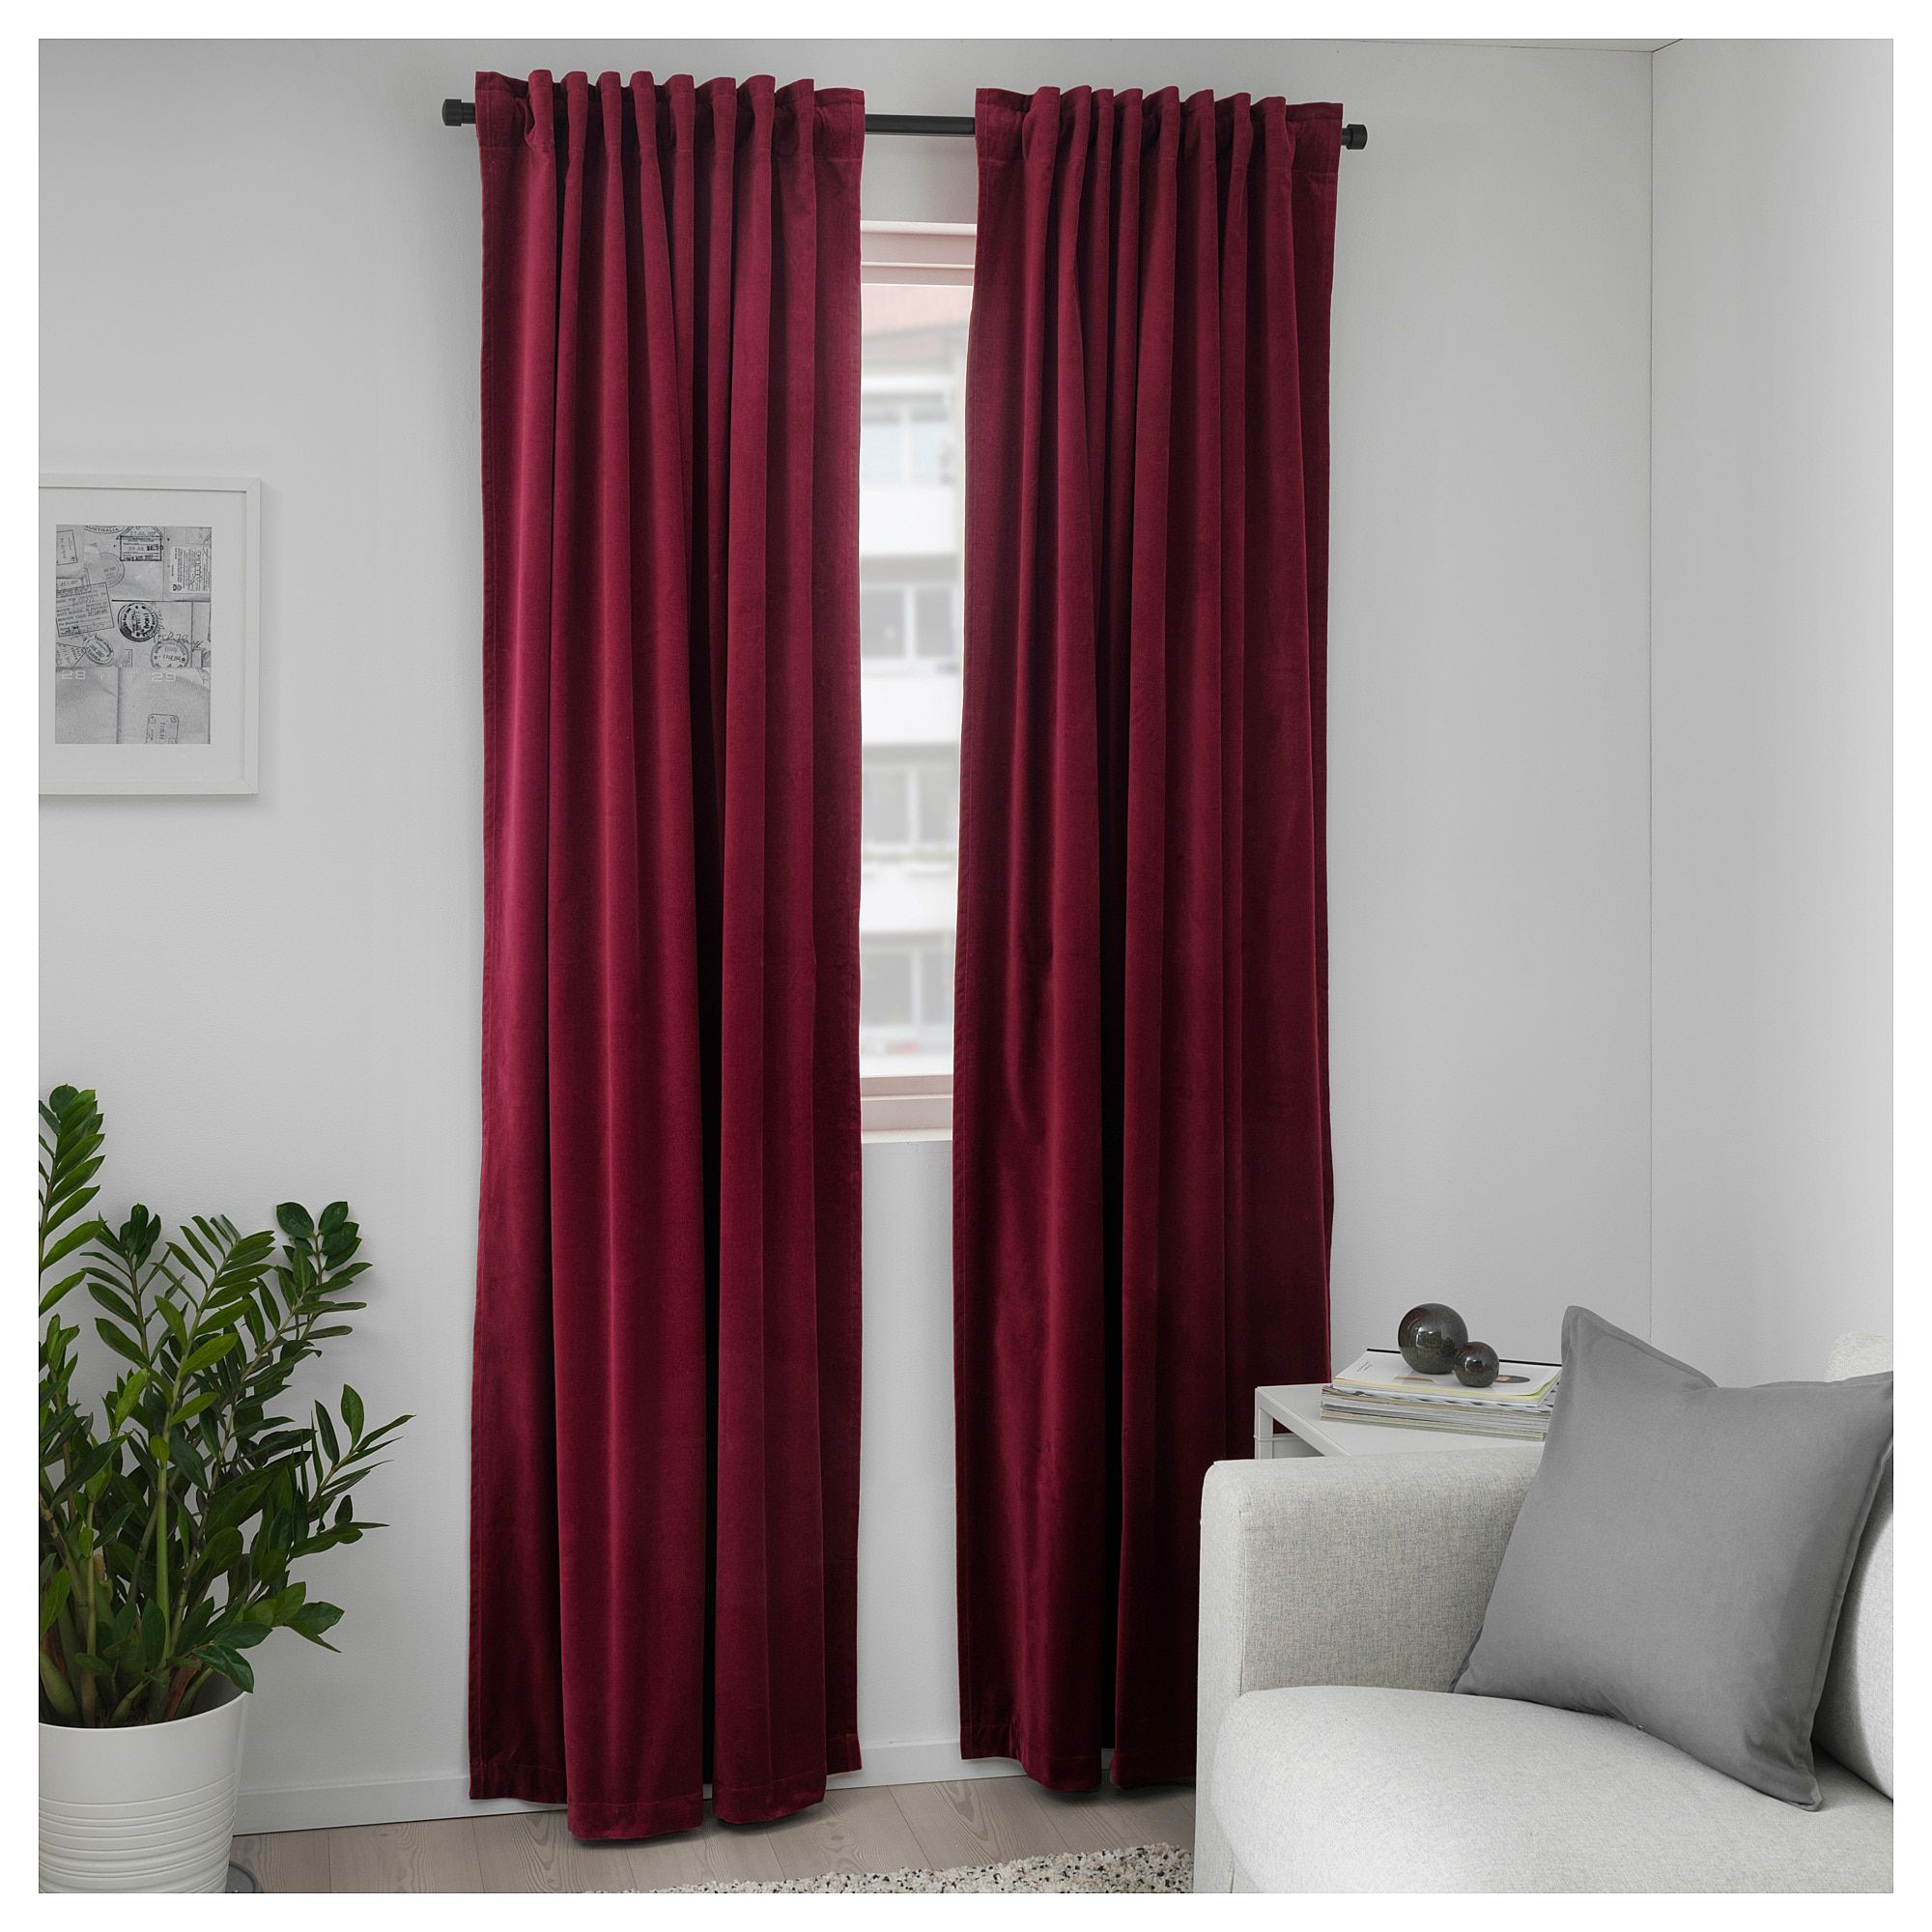 Furniture and Home Furnishings in 2019 | Red curtains living ...